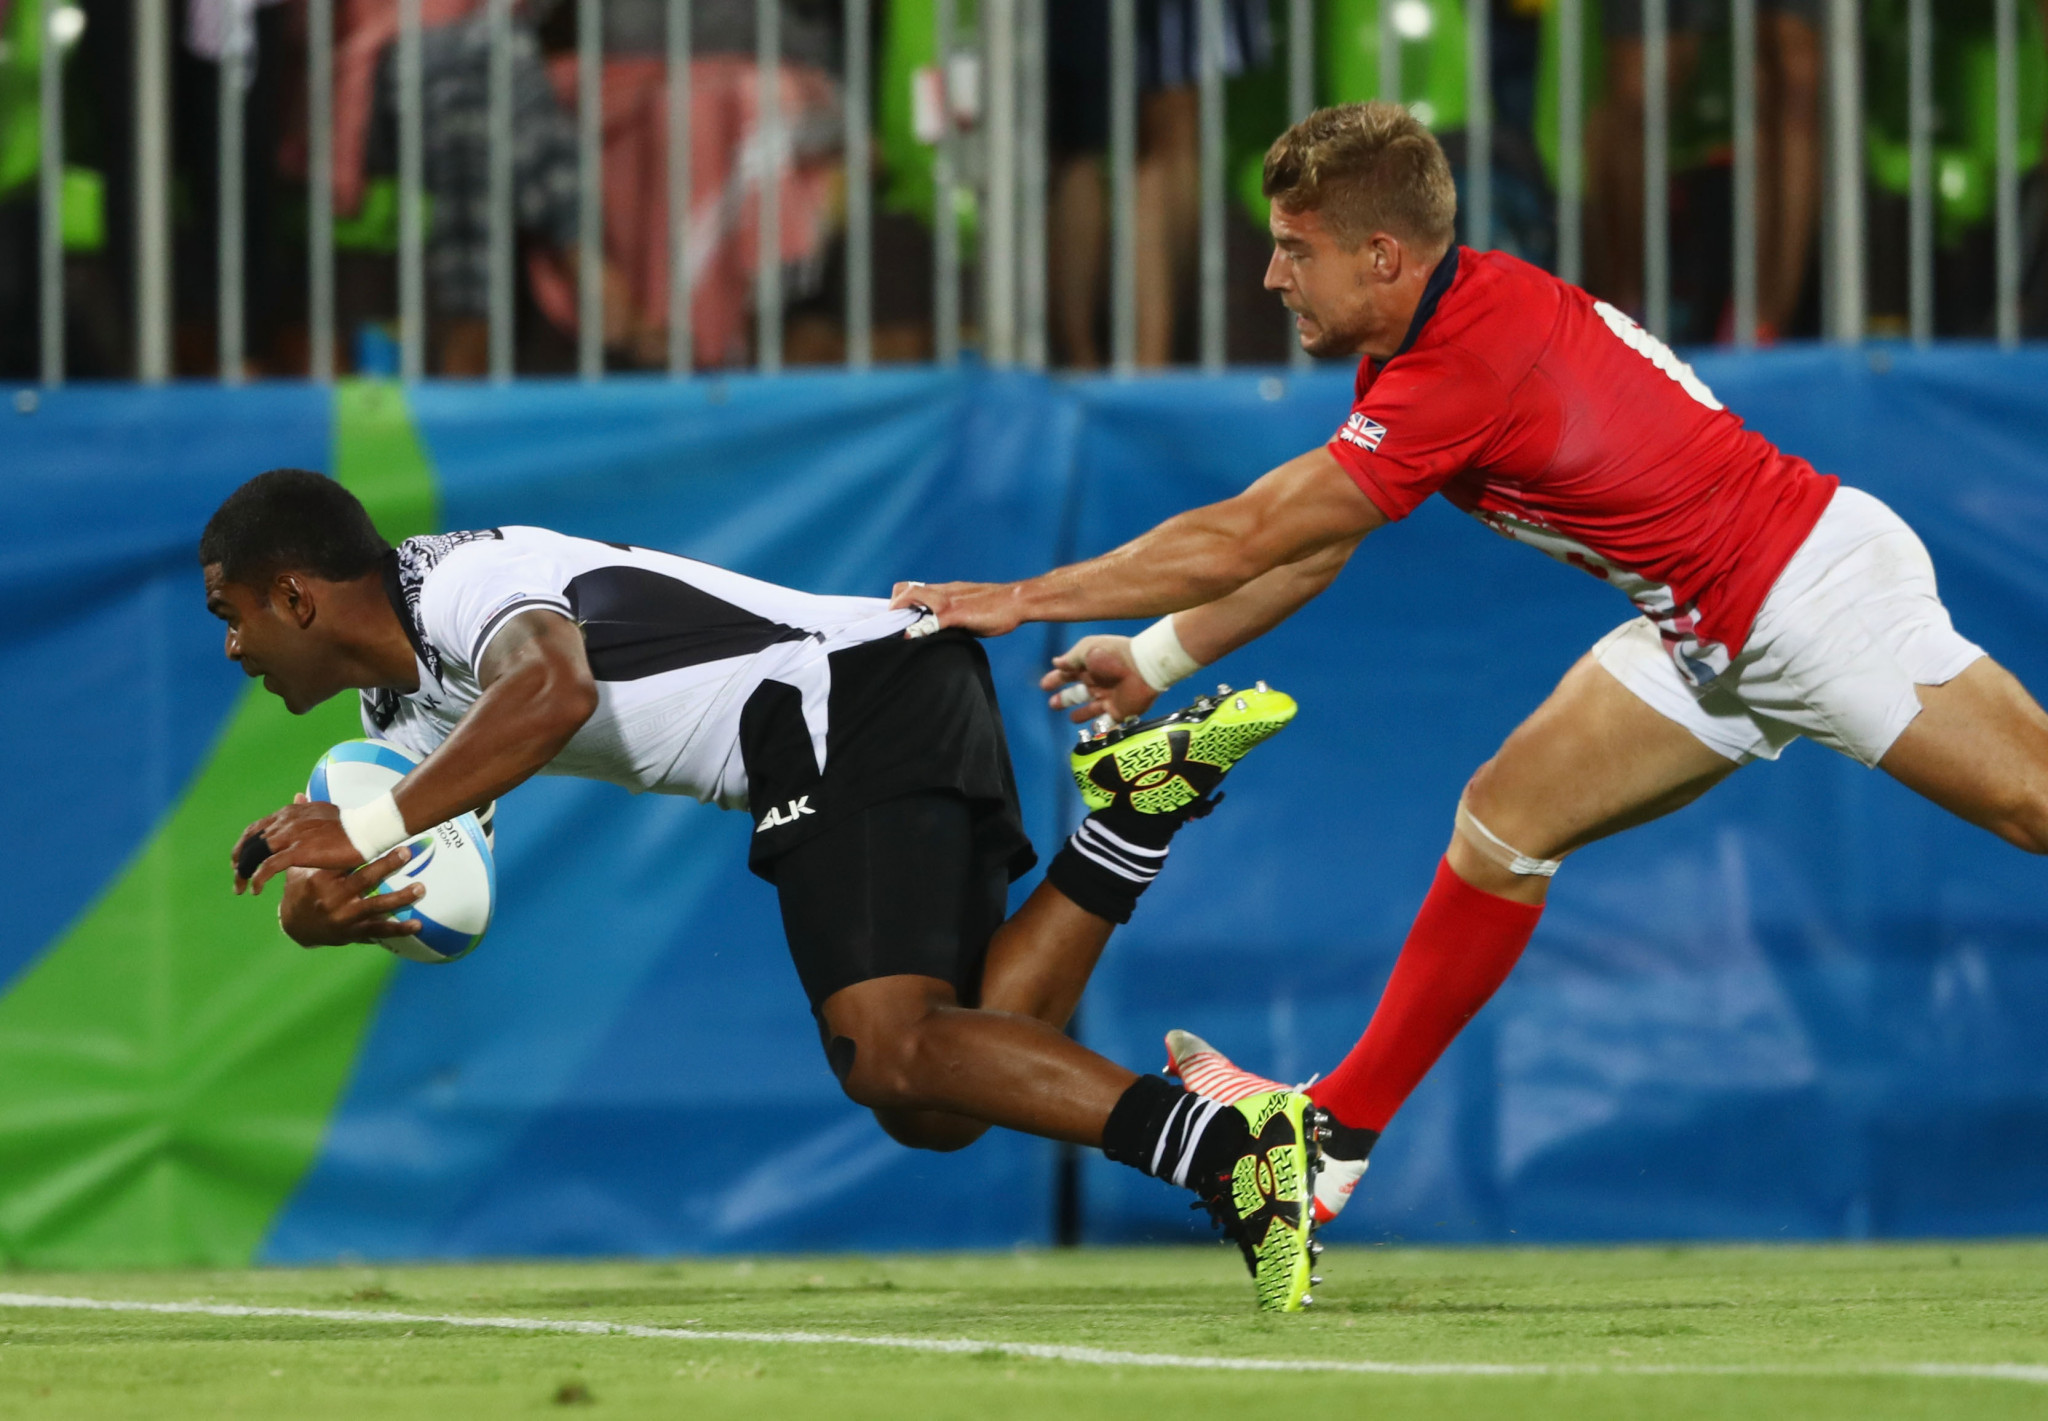 The introduction of rugby sevens onto the Olympic programme at Rio 2016, which saw Fiji winning the men's gold medal, was picked as a highlight of his first four-year term by Sir Bill Beaumont ©Getty Images